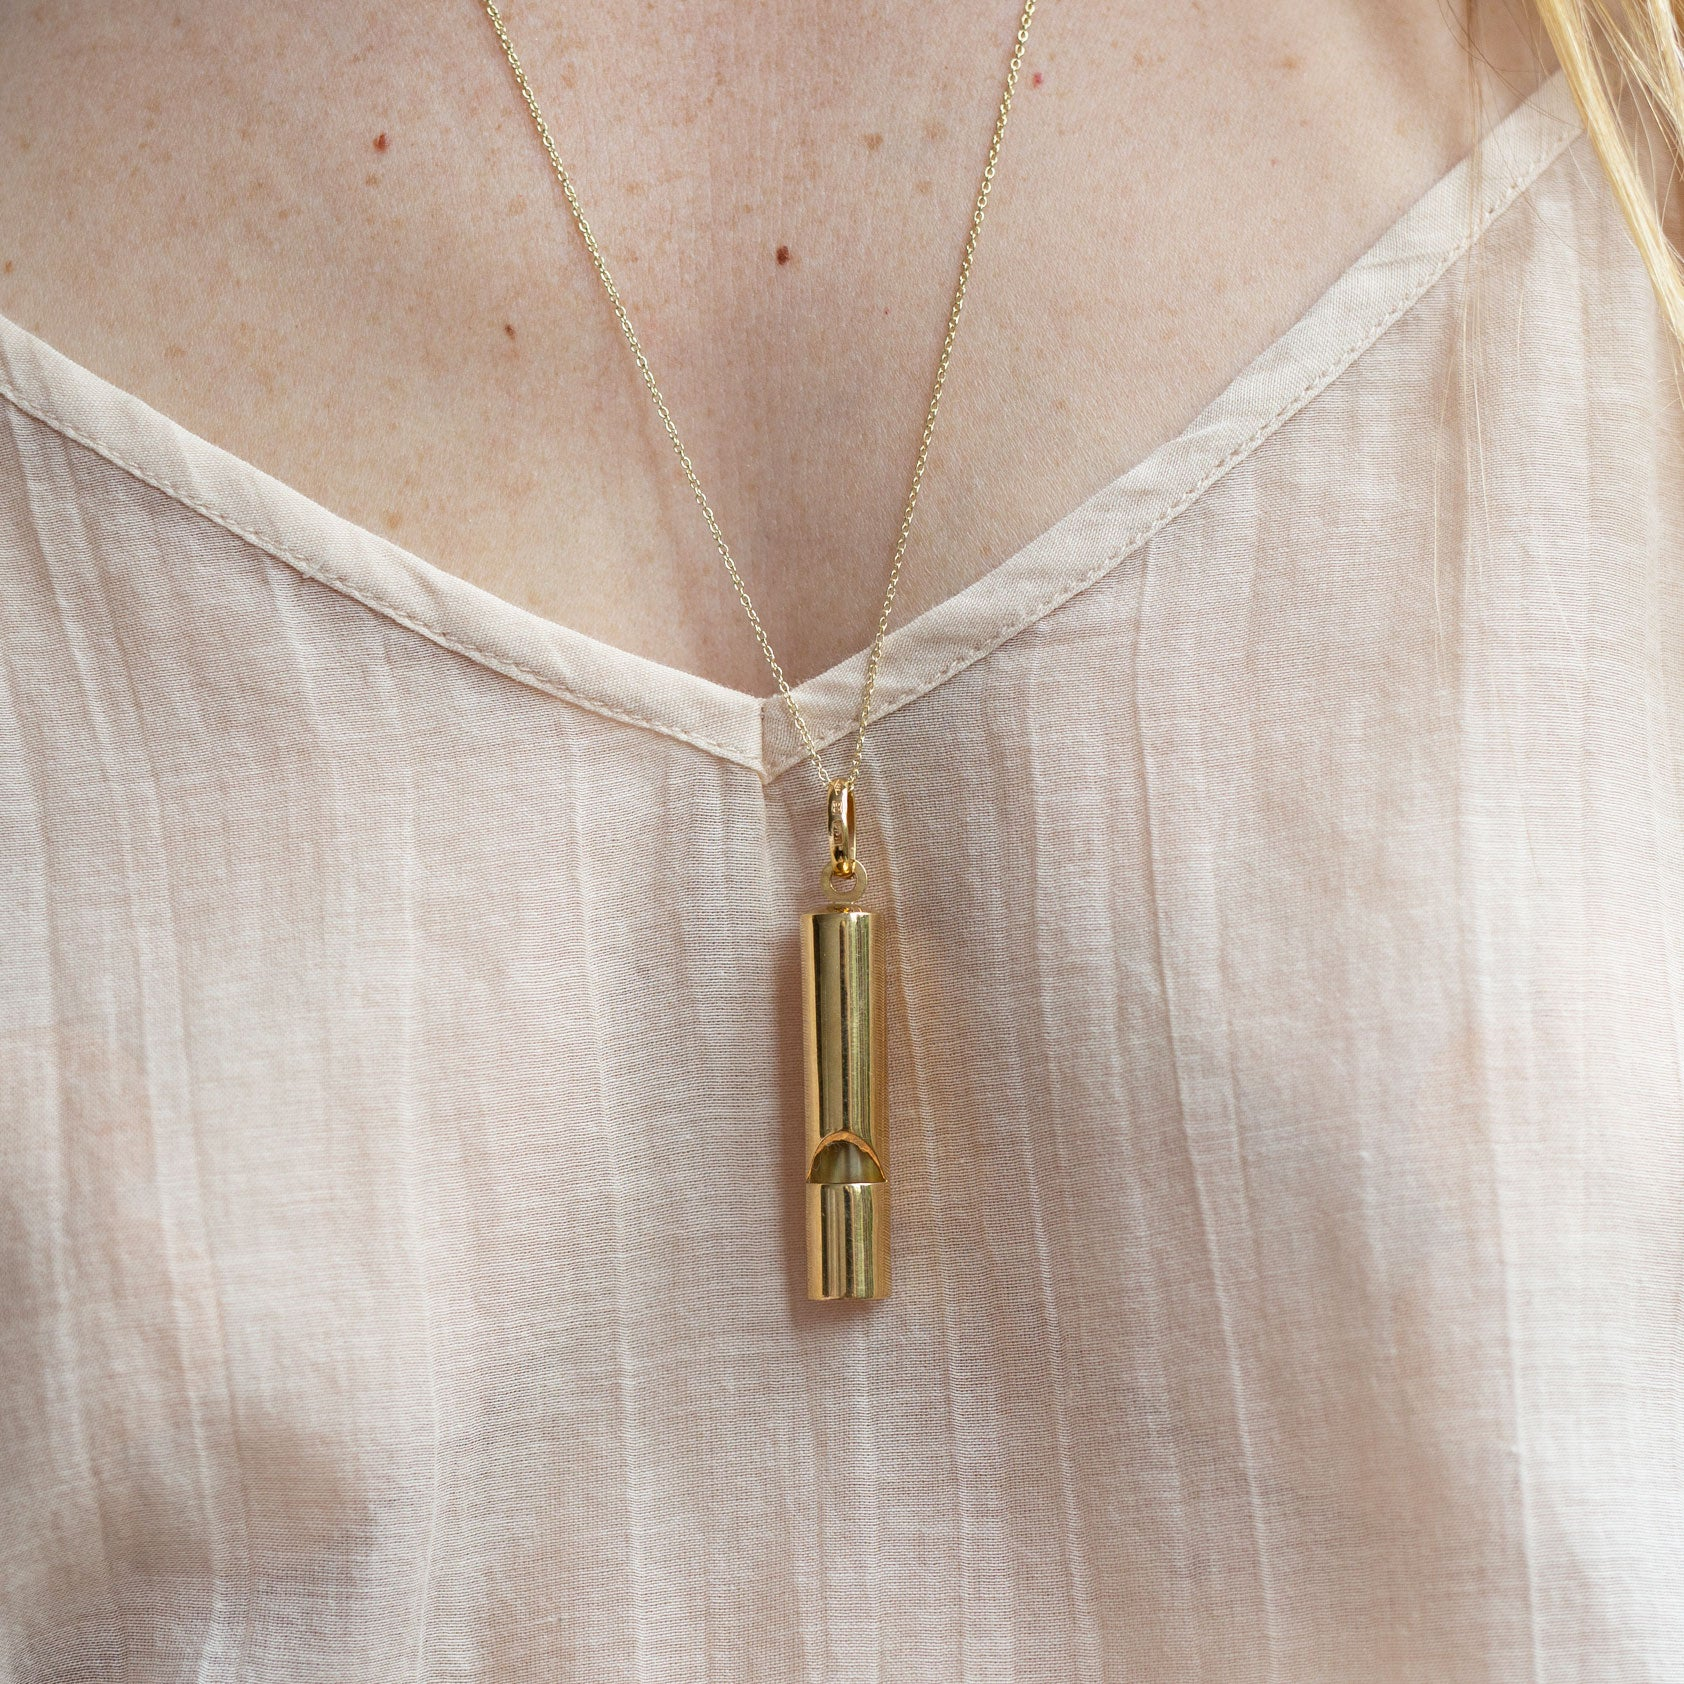 Large Whistle 14k Gold Pendant Necklace